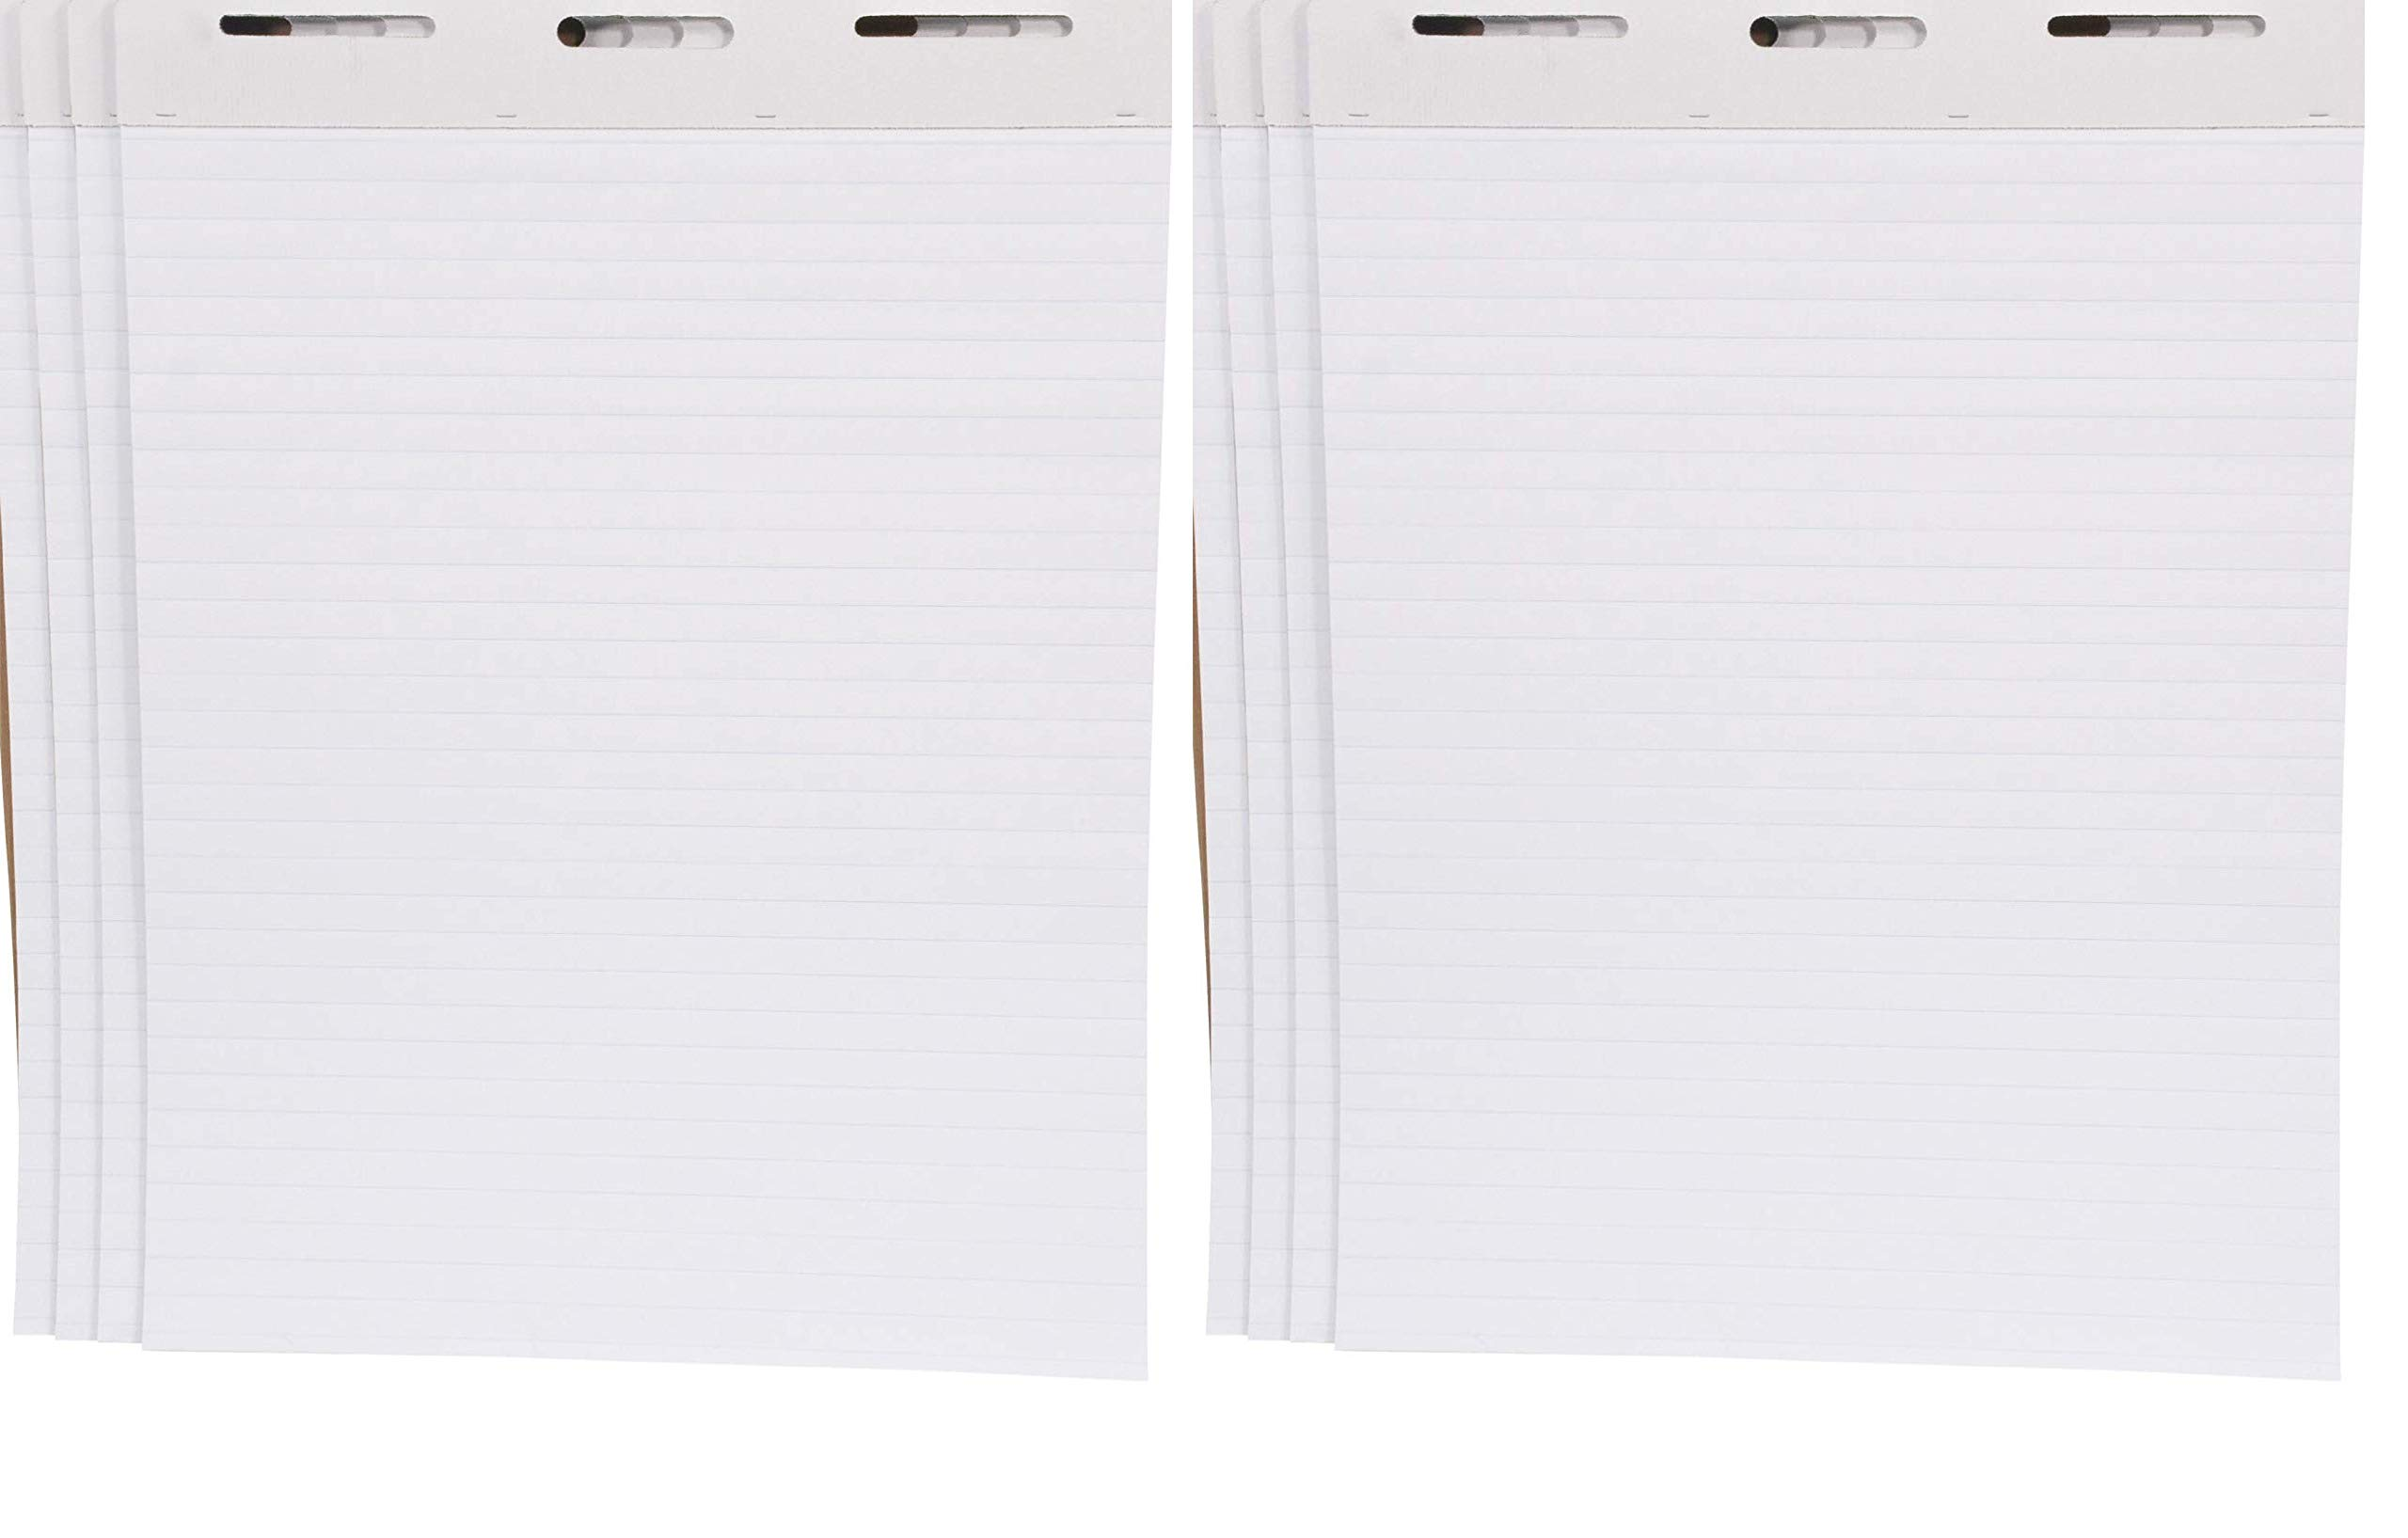 School Smart Ruled Easel Pads, 27 x 34 Inches, 50 Sheets, White, Pack of 4-1467043 (Тwo Рack) by School Smart